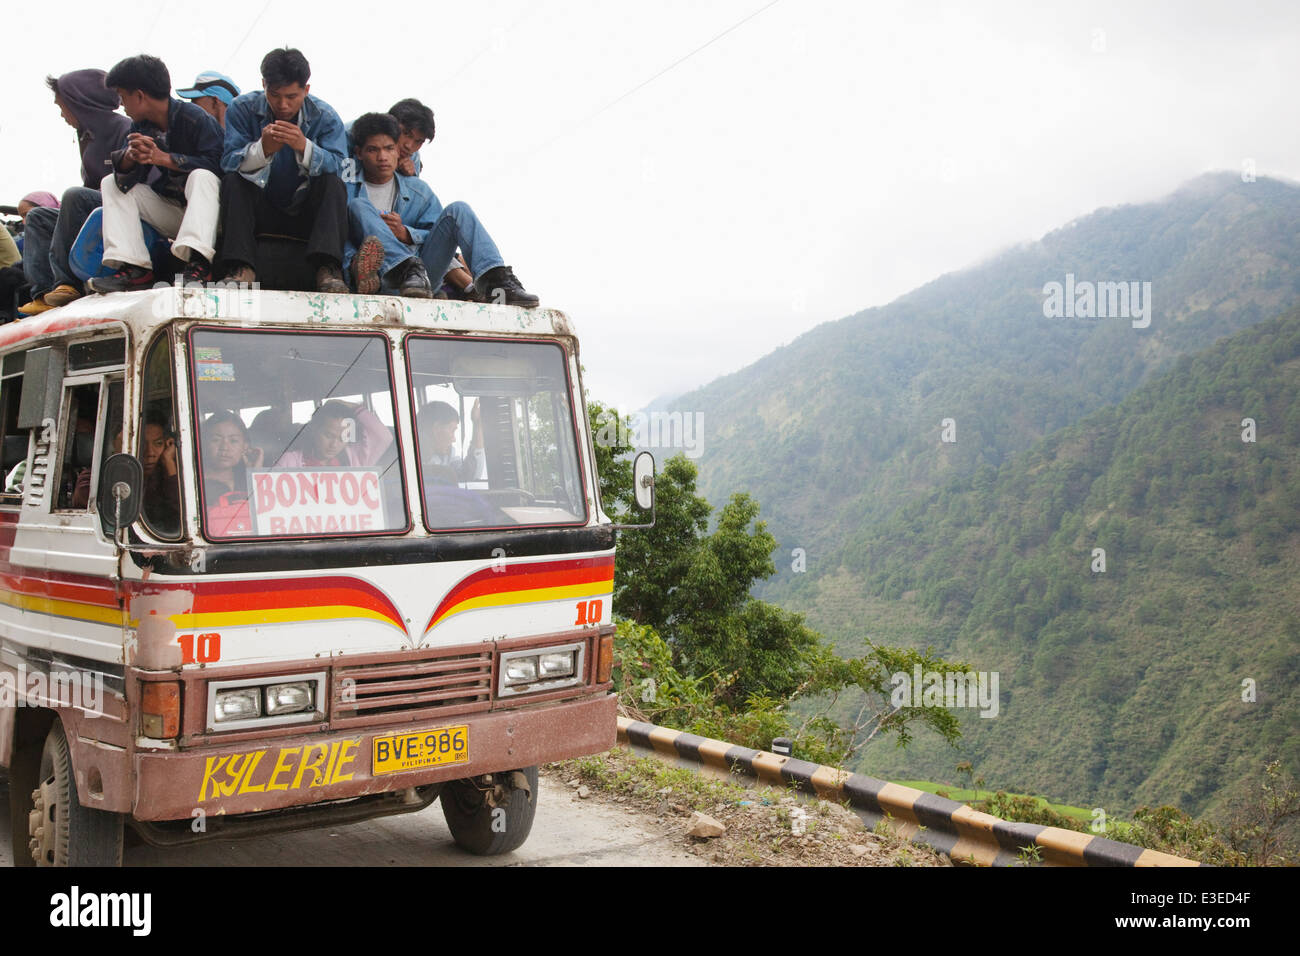 Filipinos on bus roof journey from Banaue and Bontoc, Northern Luzon, Philippines. - Stock Image